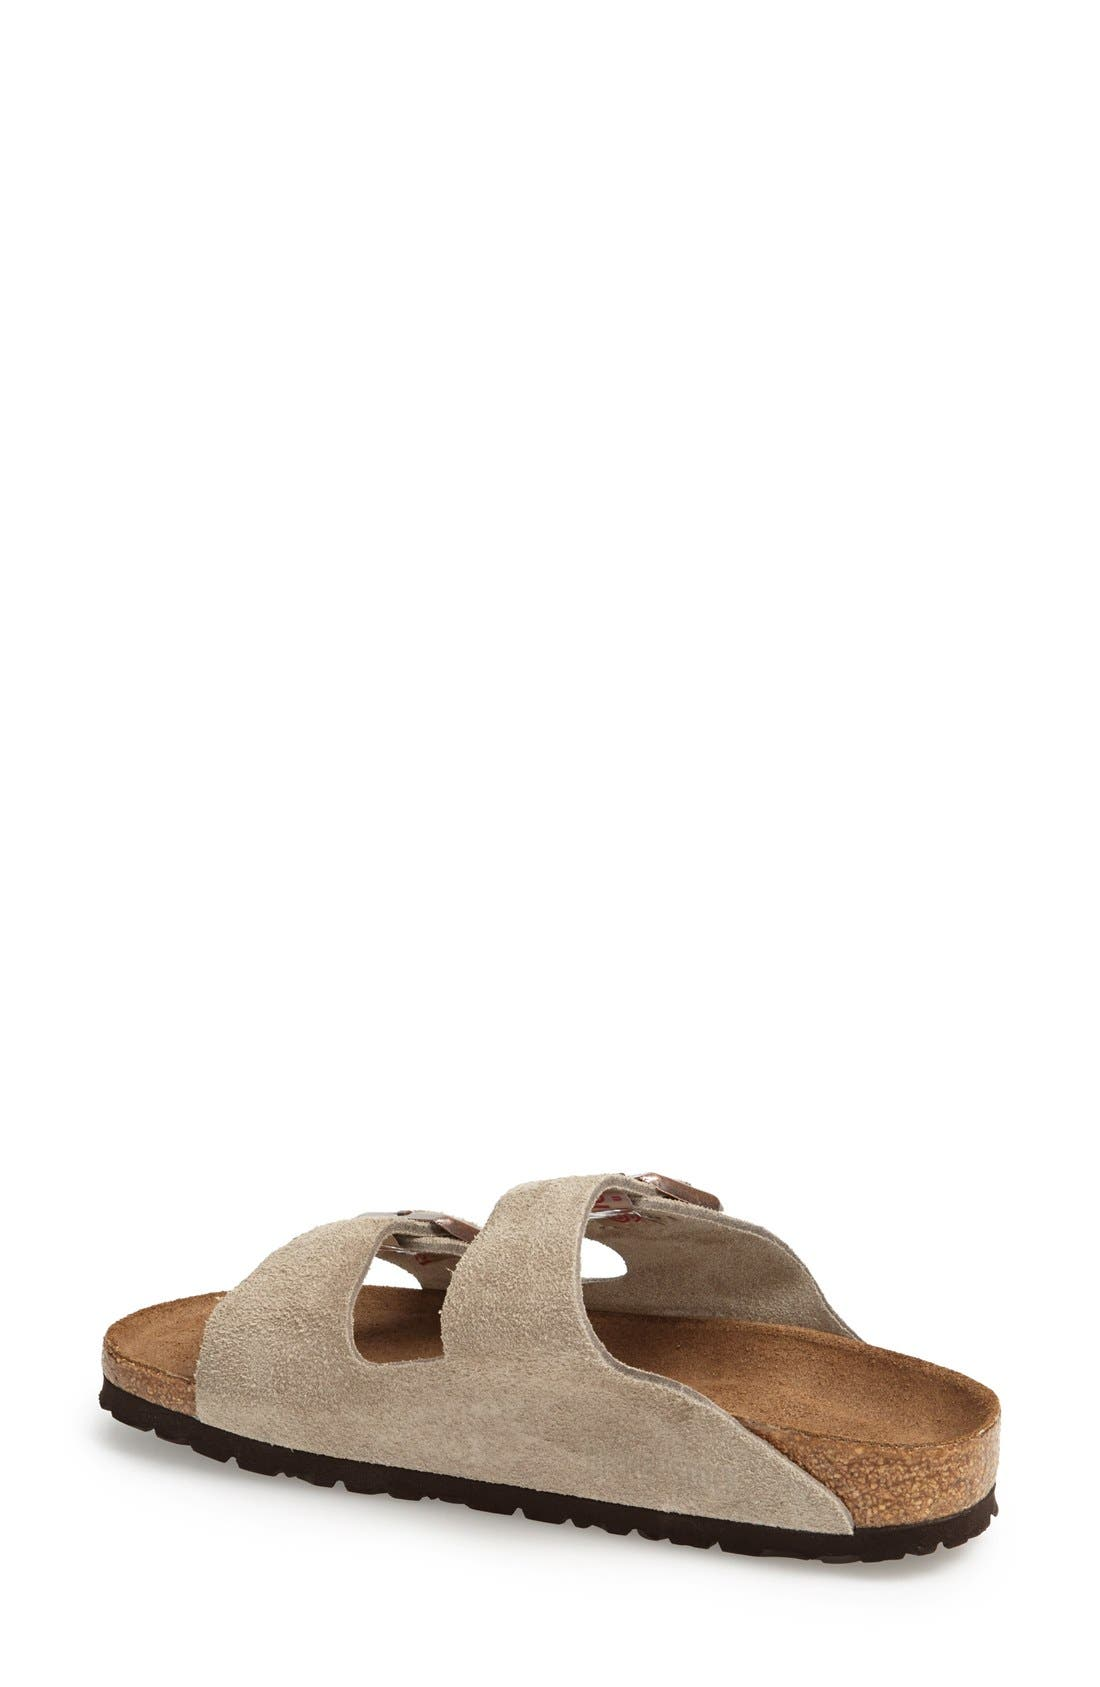 'Arizona' Soft Footbed Suede Sandal,                             Alternate thumbnail 2, color,                             Taupe Suede